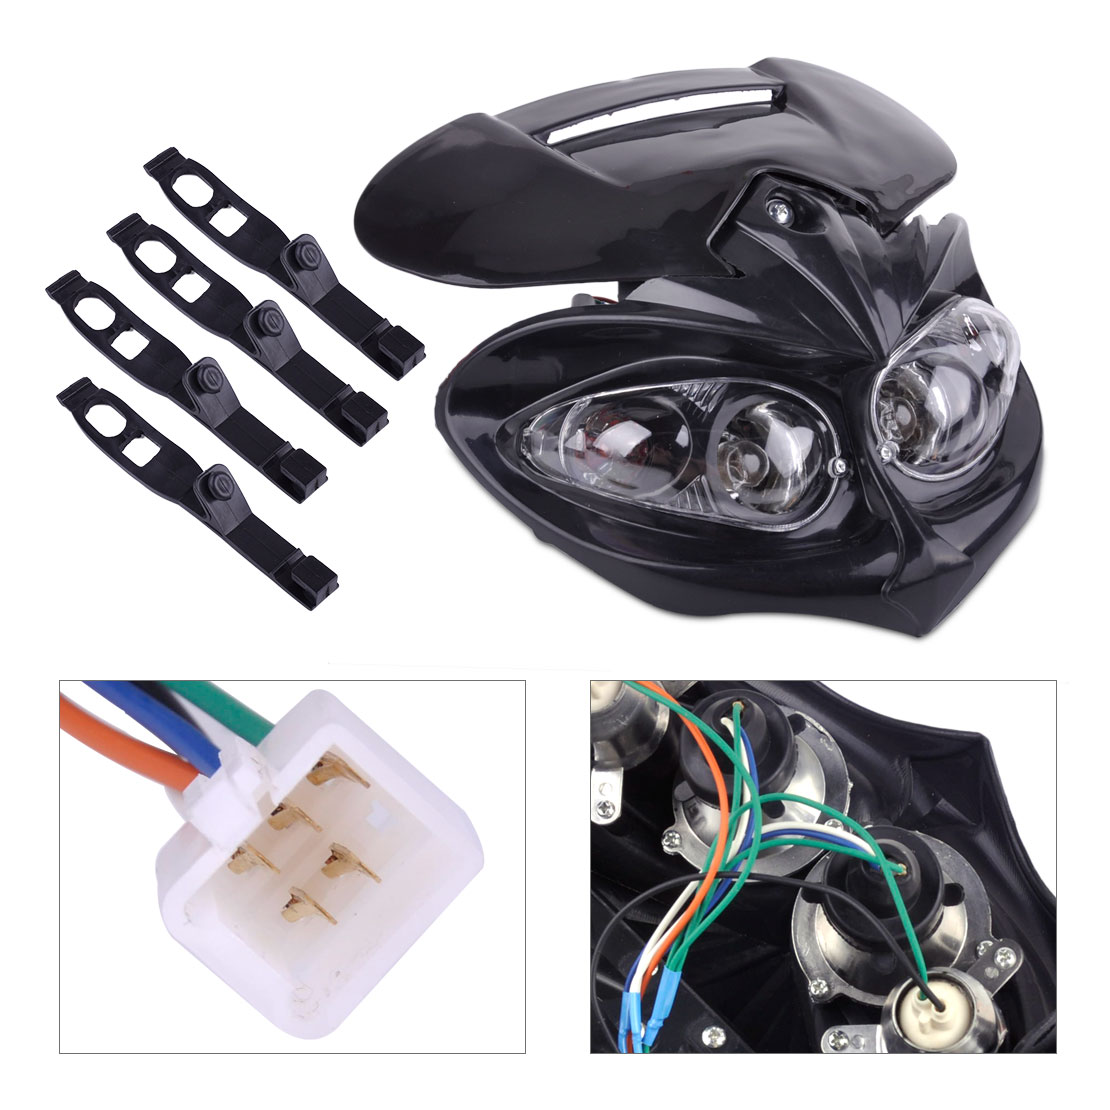 DWCX 5 Pin Black & Clear Front Head Dual Sport Light Lamp Fairing with Mounting Strap for Street Fighter Street Ran Motorcycle ...